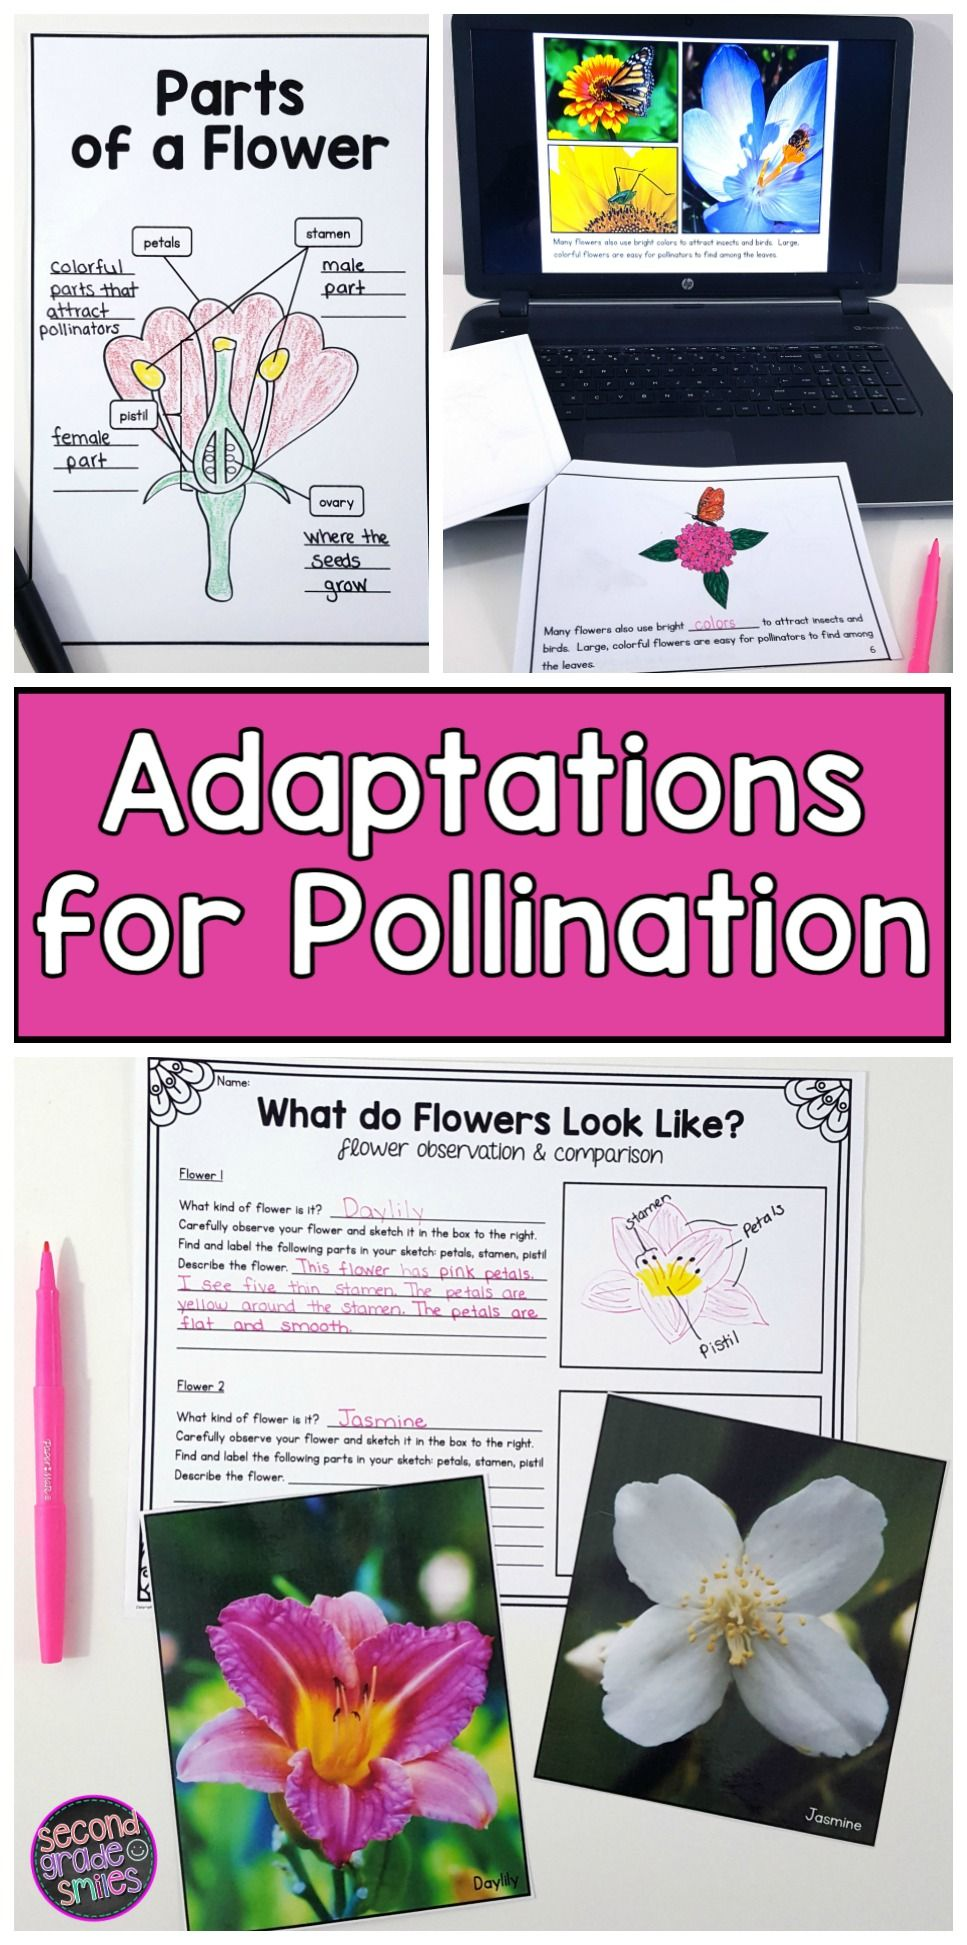 Parts Of A Flower Plant Adaptations For Pollination Plant Adaptations Pollination Parts Of A Flower